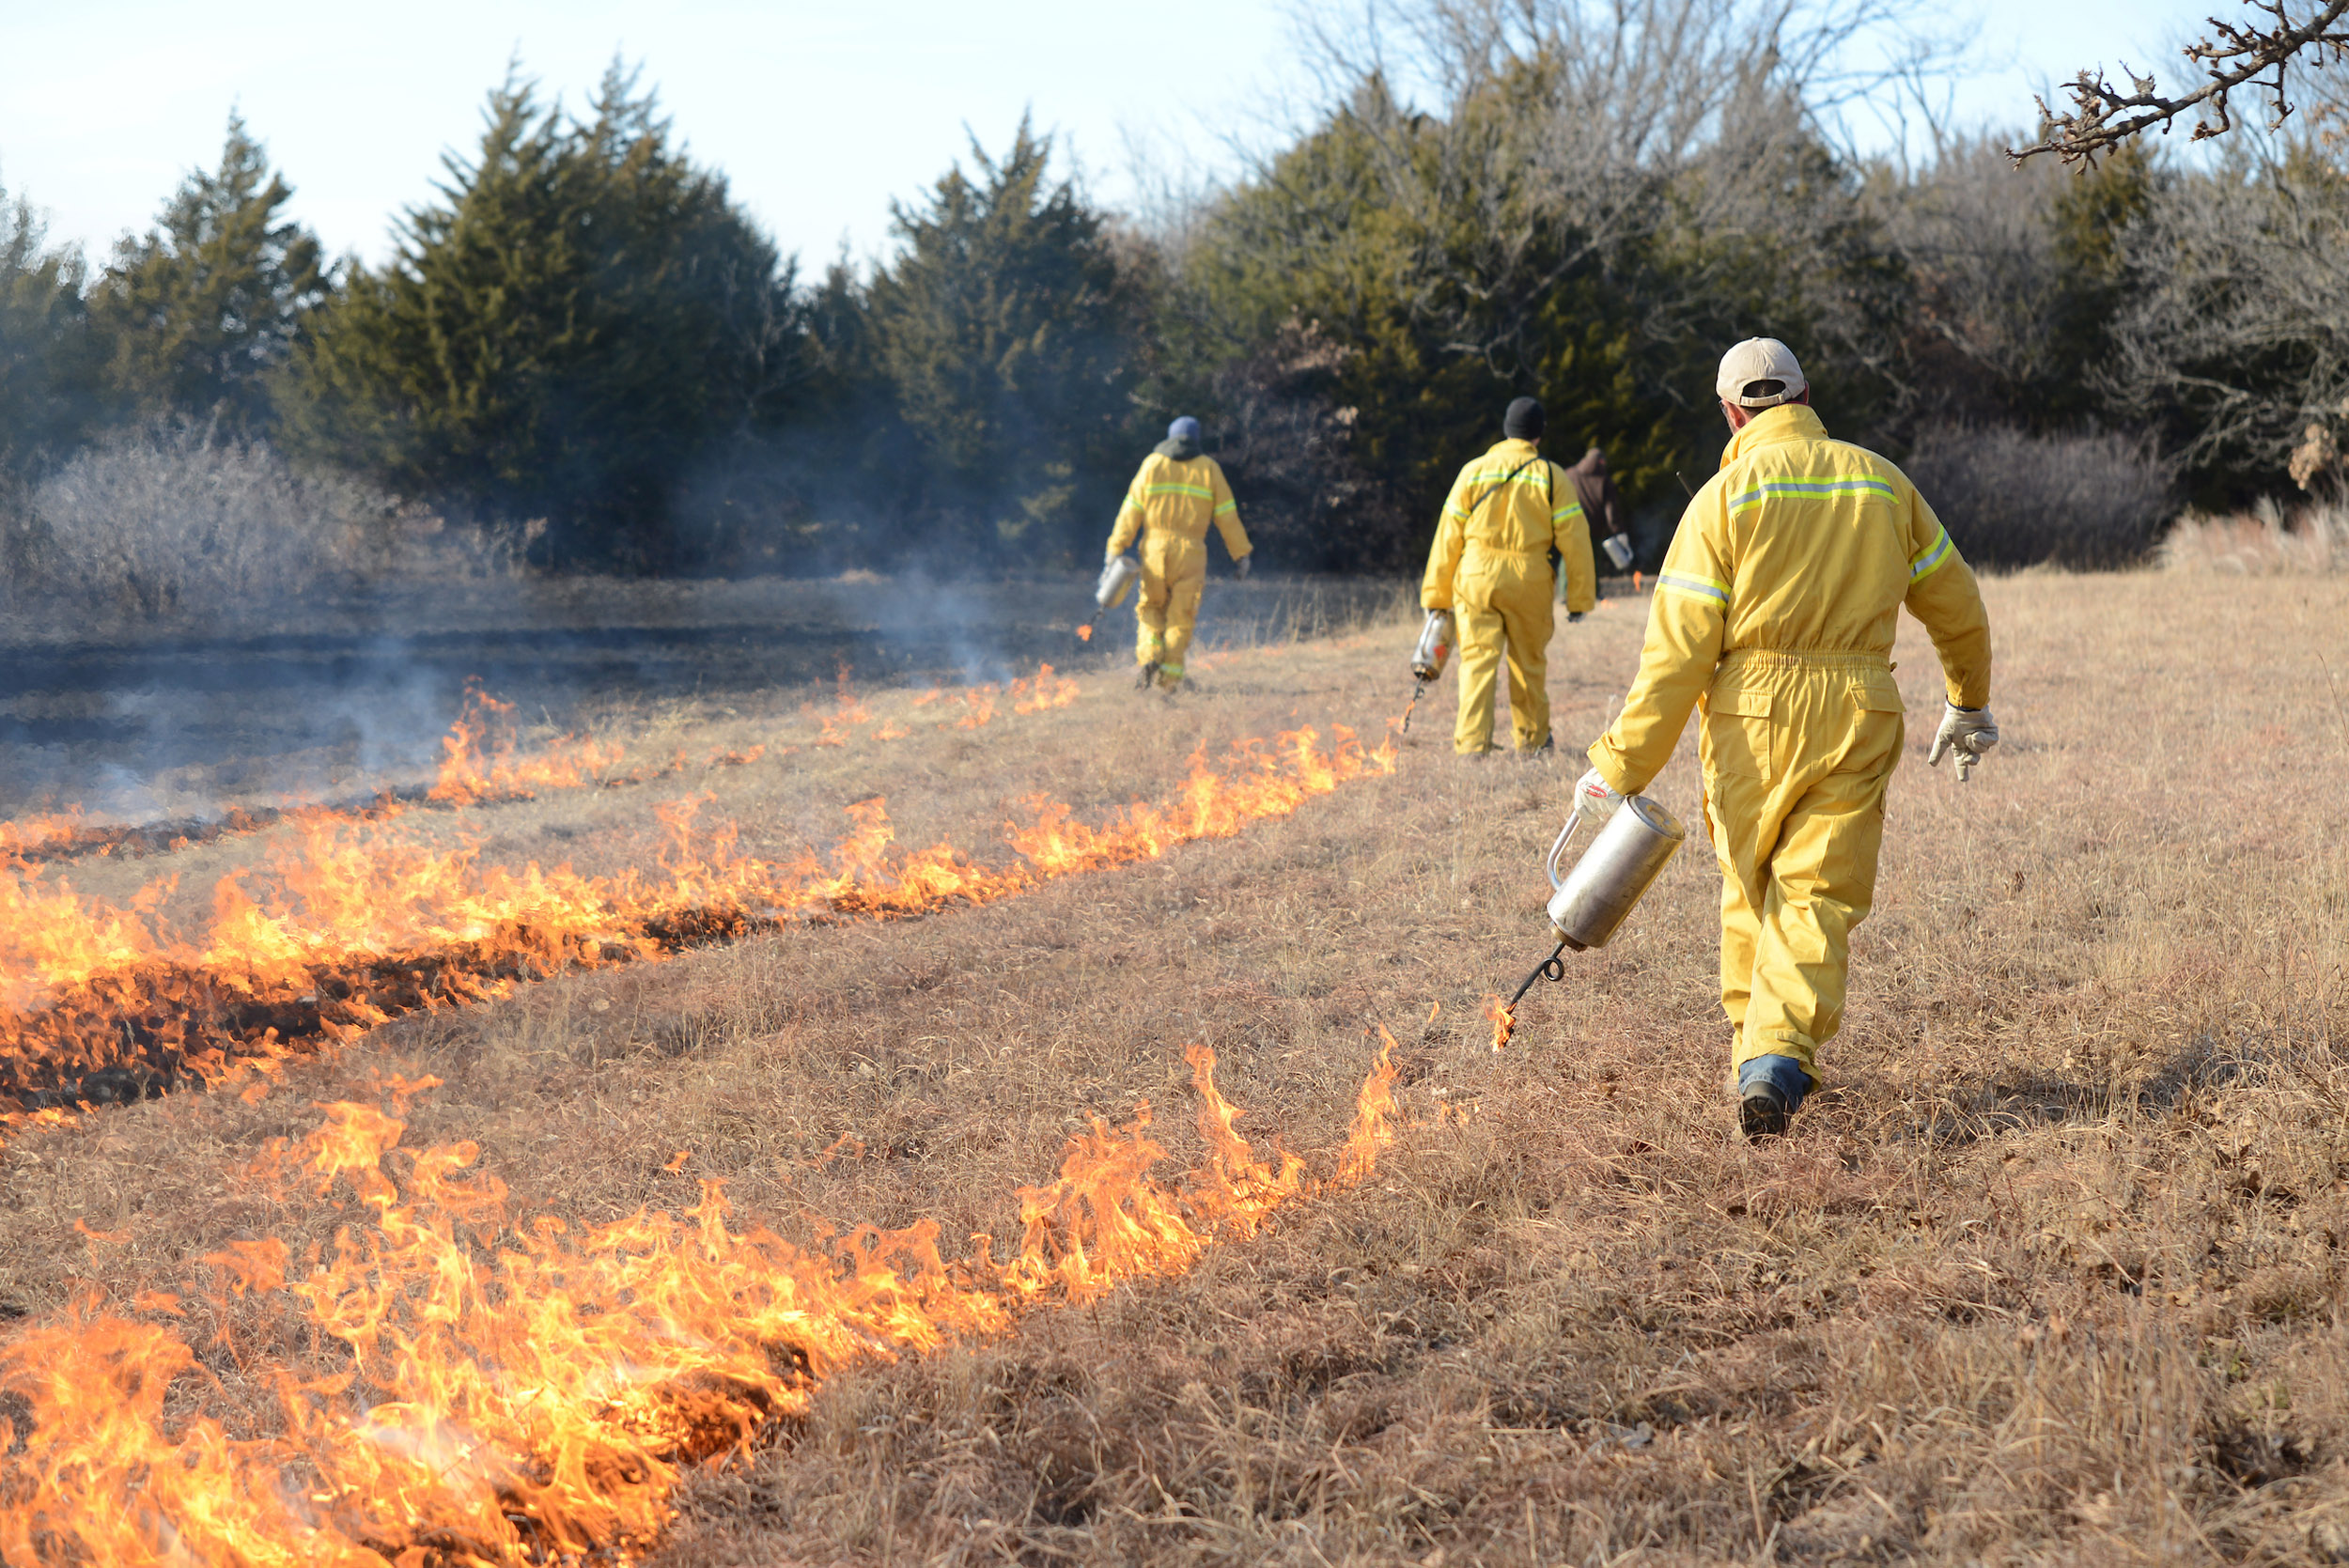 Crews lighting scrubland on fire for controlled burns